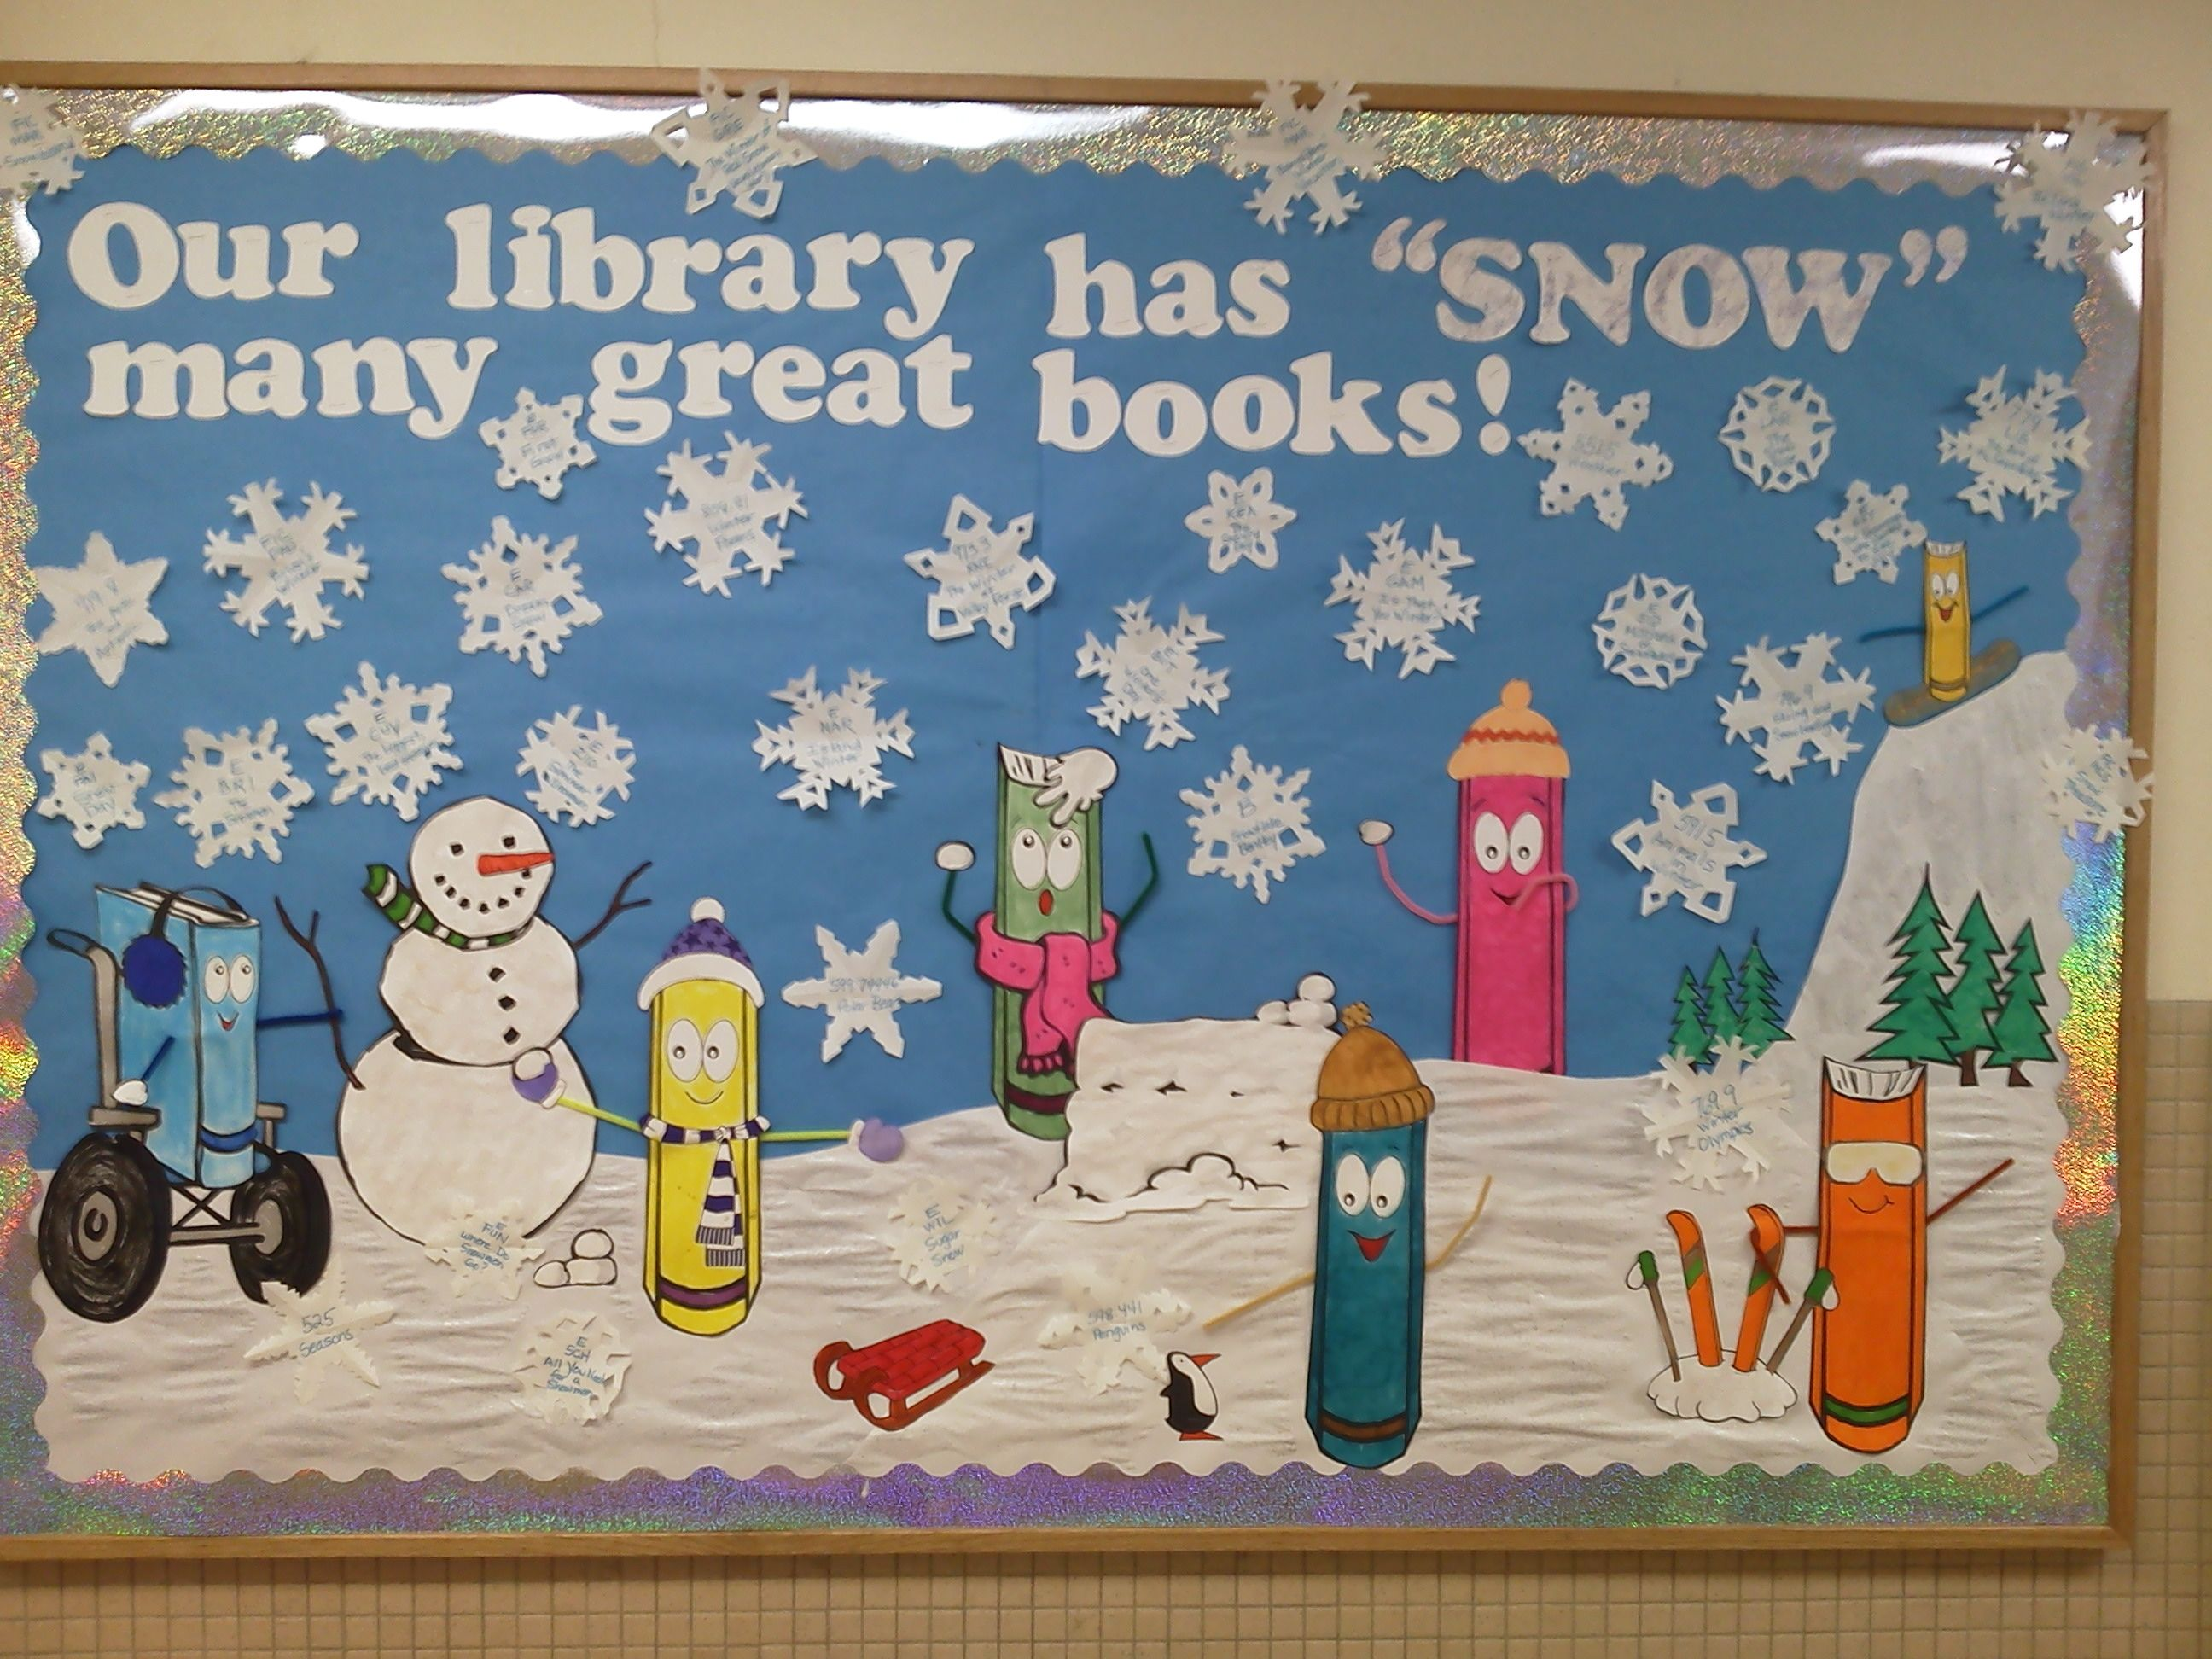 Winter Elementary School Library Bulletin Board Students Can Make The Snowflakes In A Li Boards Decorations Themes